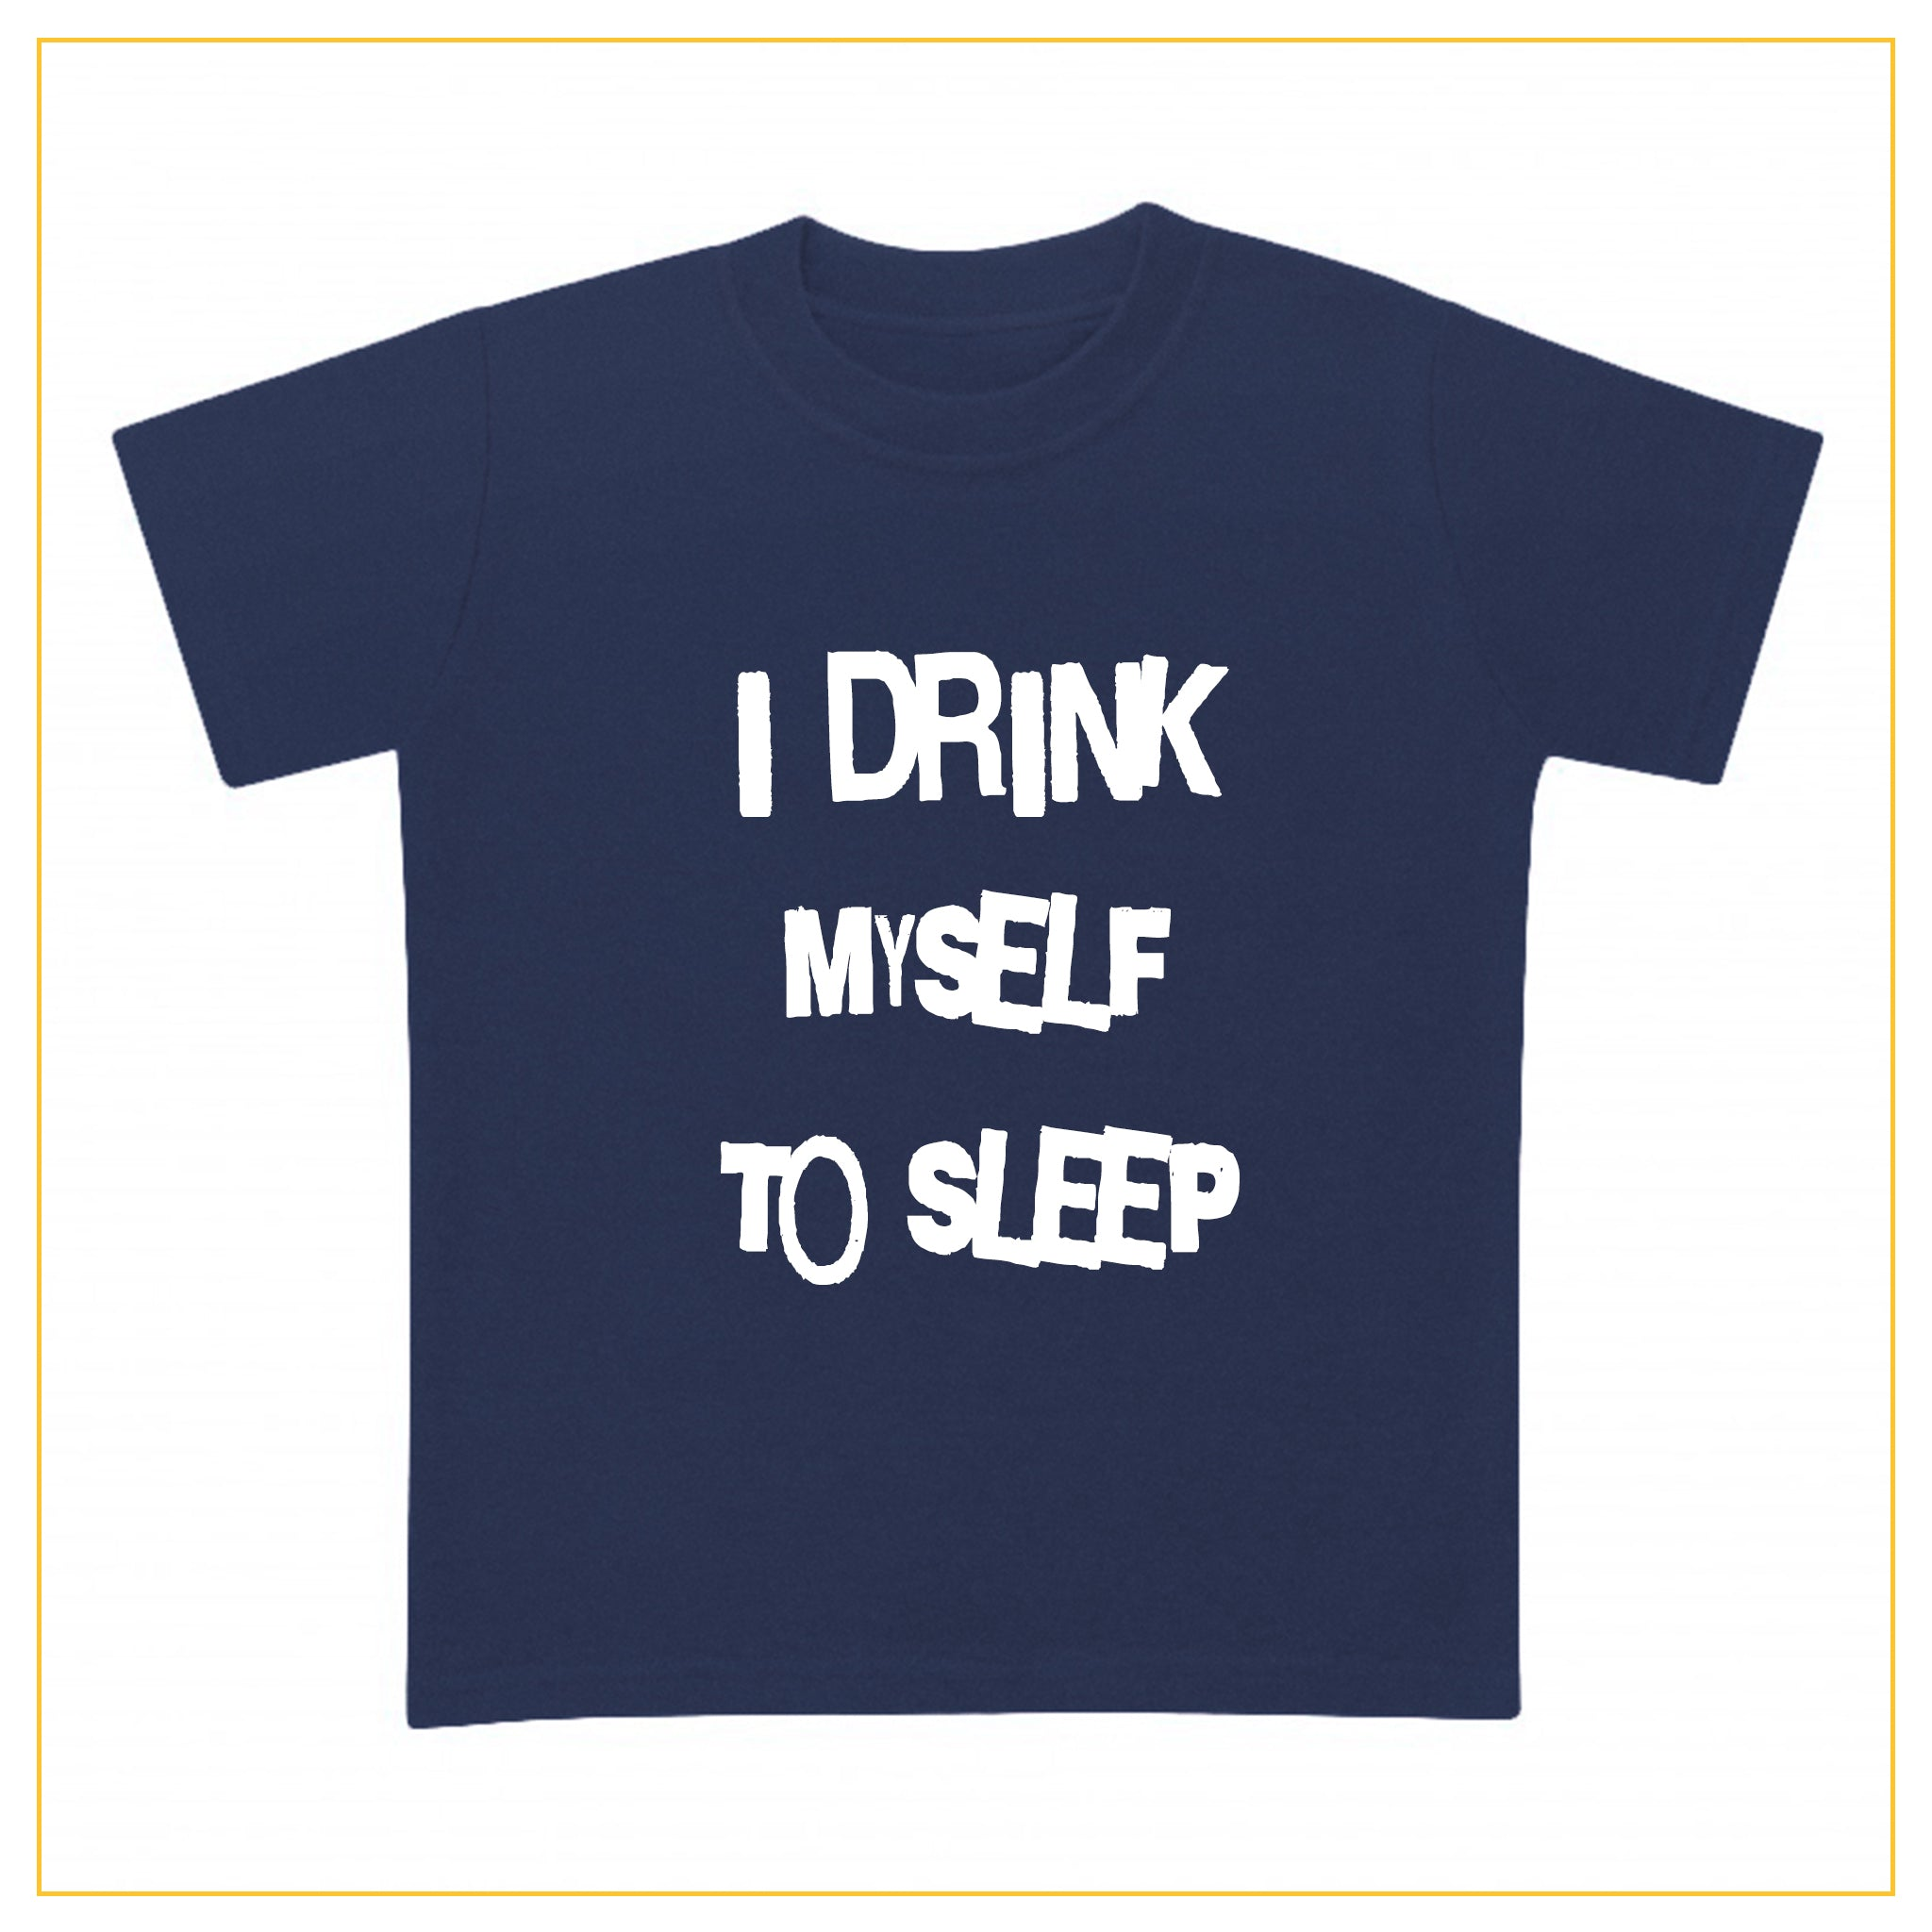 I drink myself to sleep baby t-shirt in navy blue